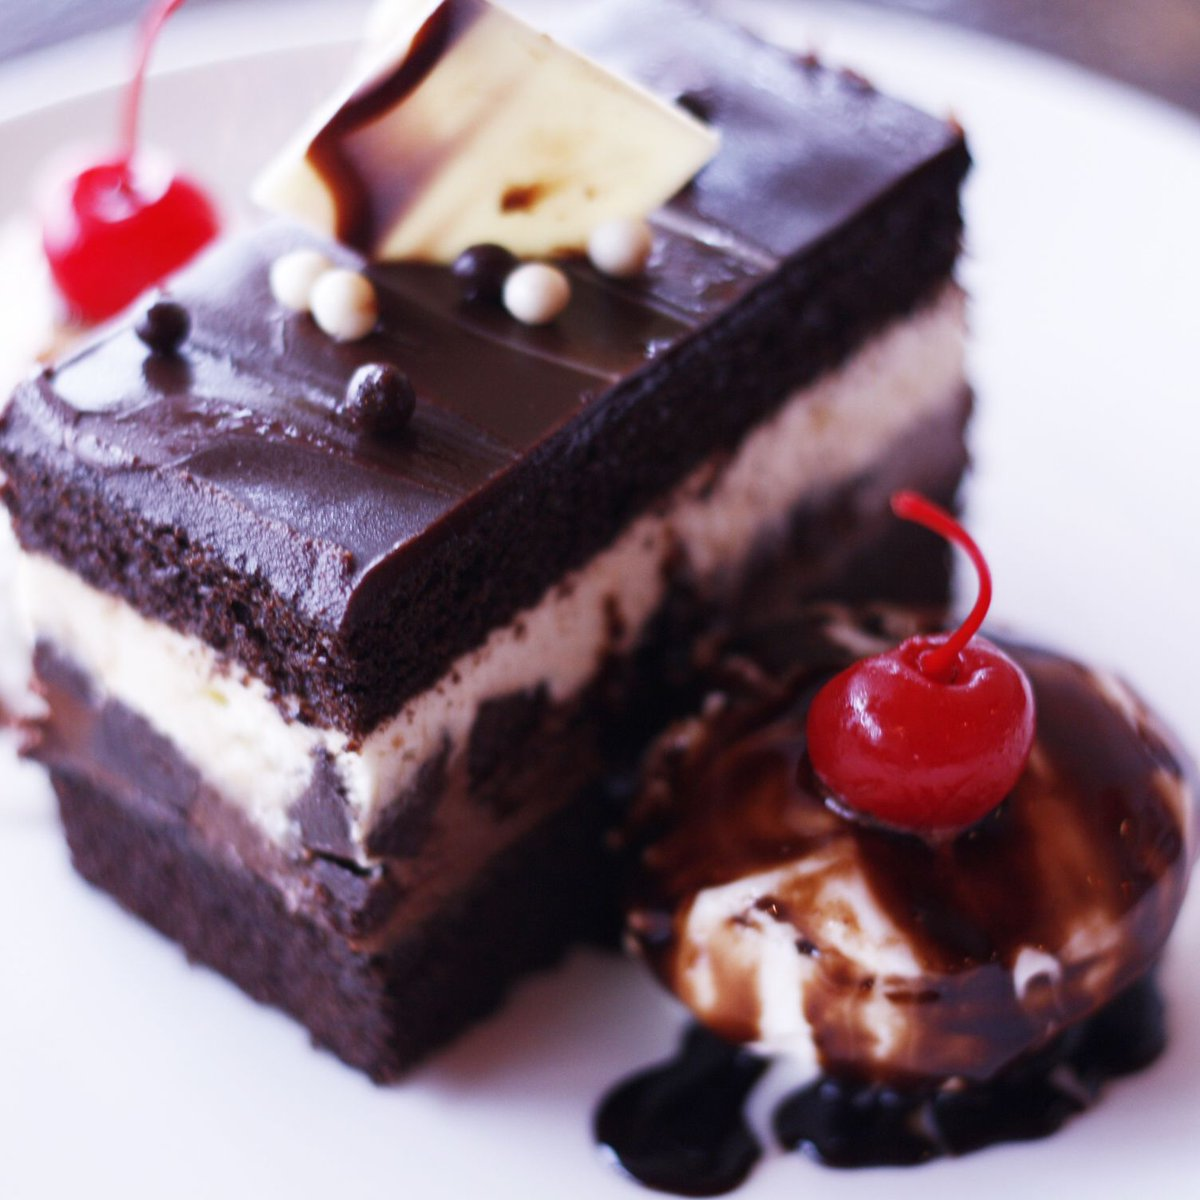 🍫 Are you looking for something really easy and quick yet delicious and vegan? Then you should definitely try This Trio of Chocolate Cake served warm with classic vanilla icecream. . #dessert  #yummy #chocolatecake #delicious #indianfood #indianrestaurant #VaadesRestaurant